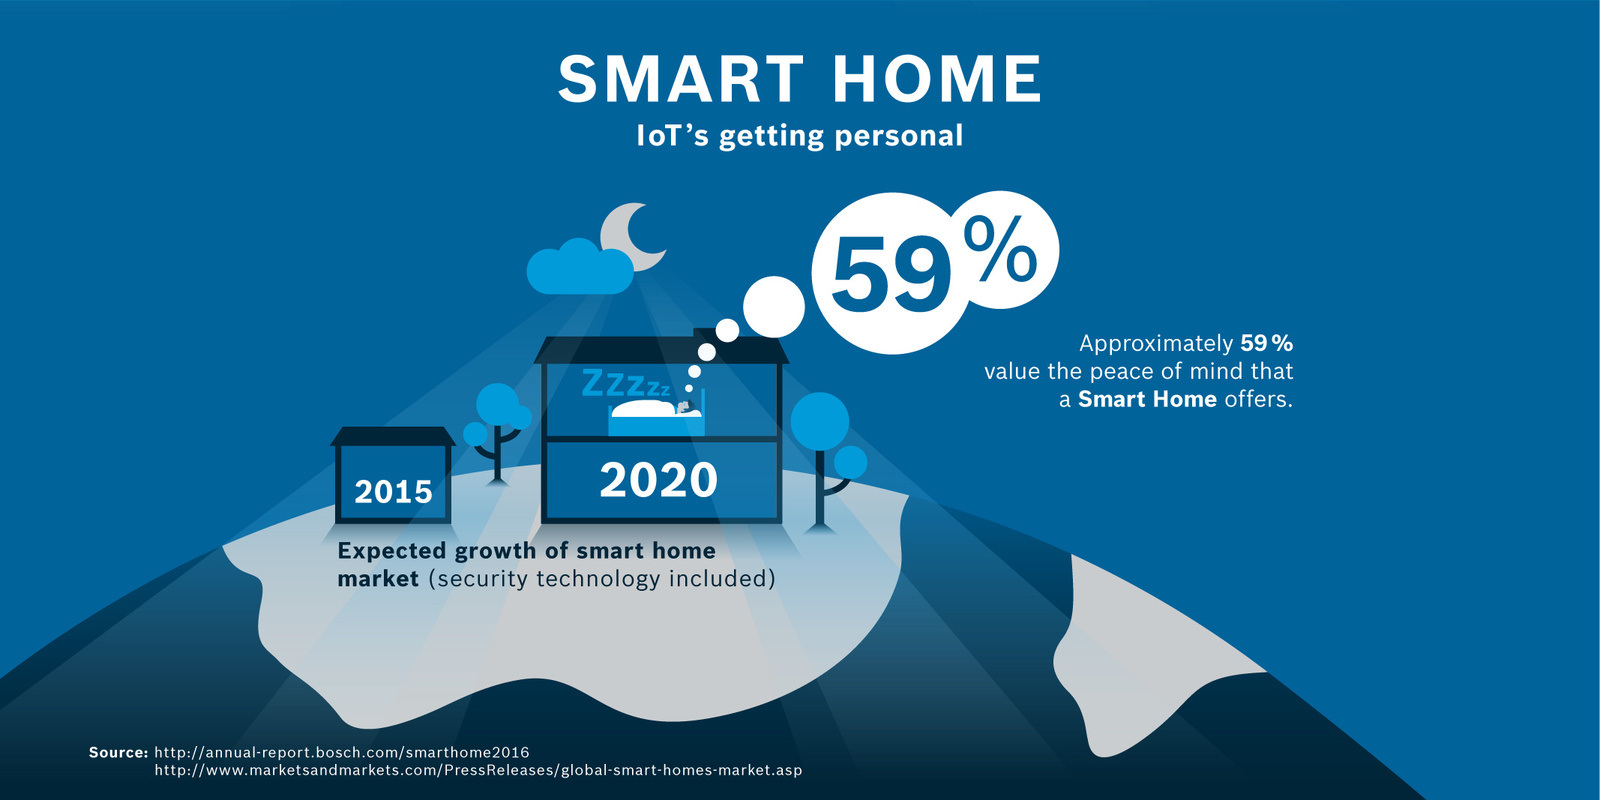 Smart Home - the touch of peace and security